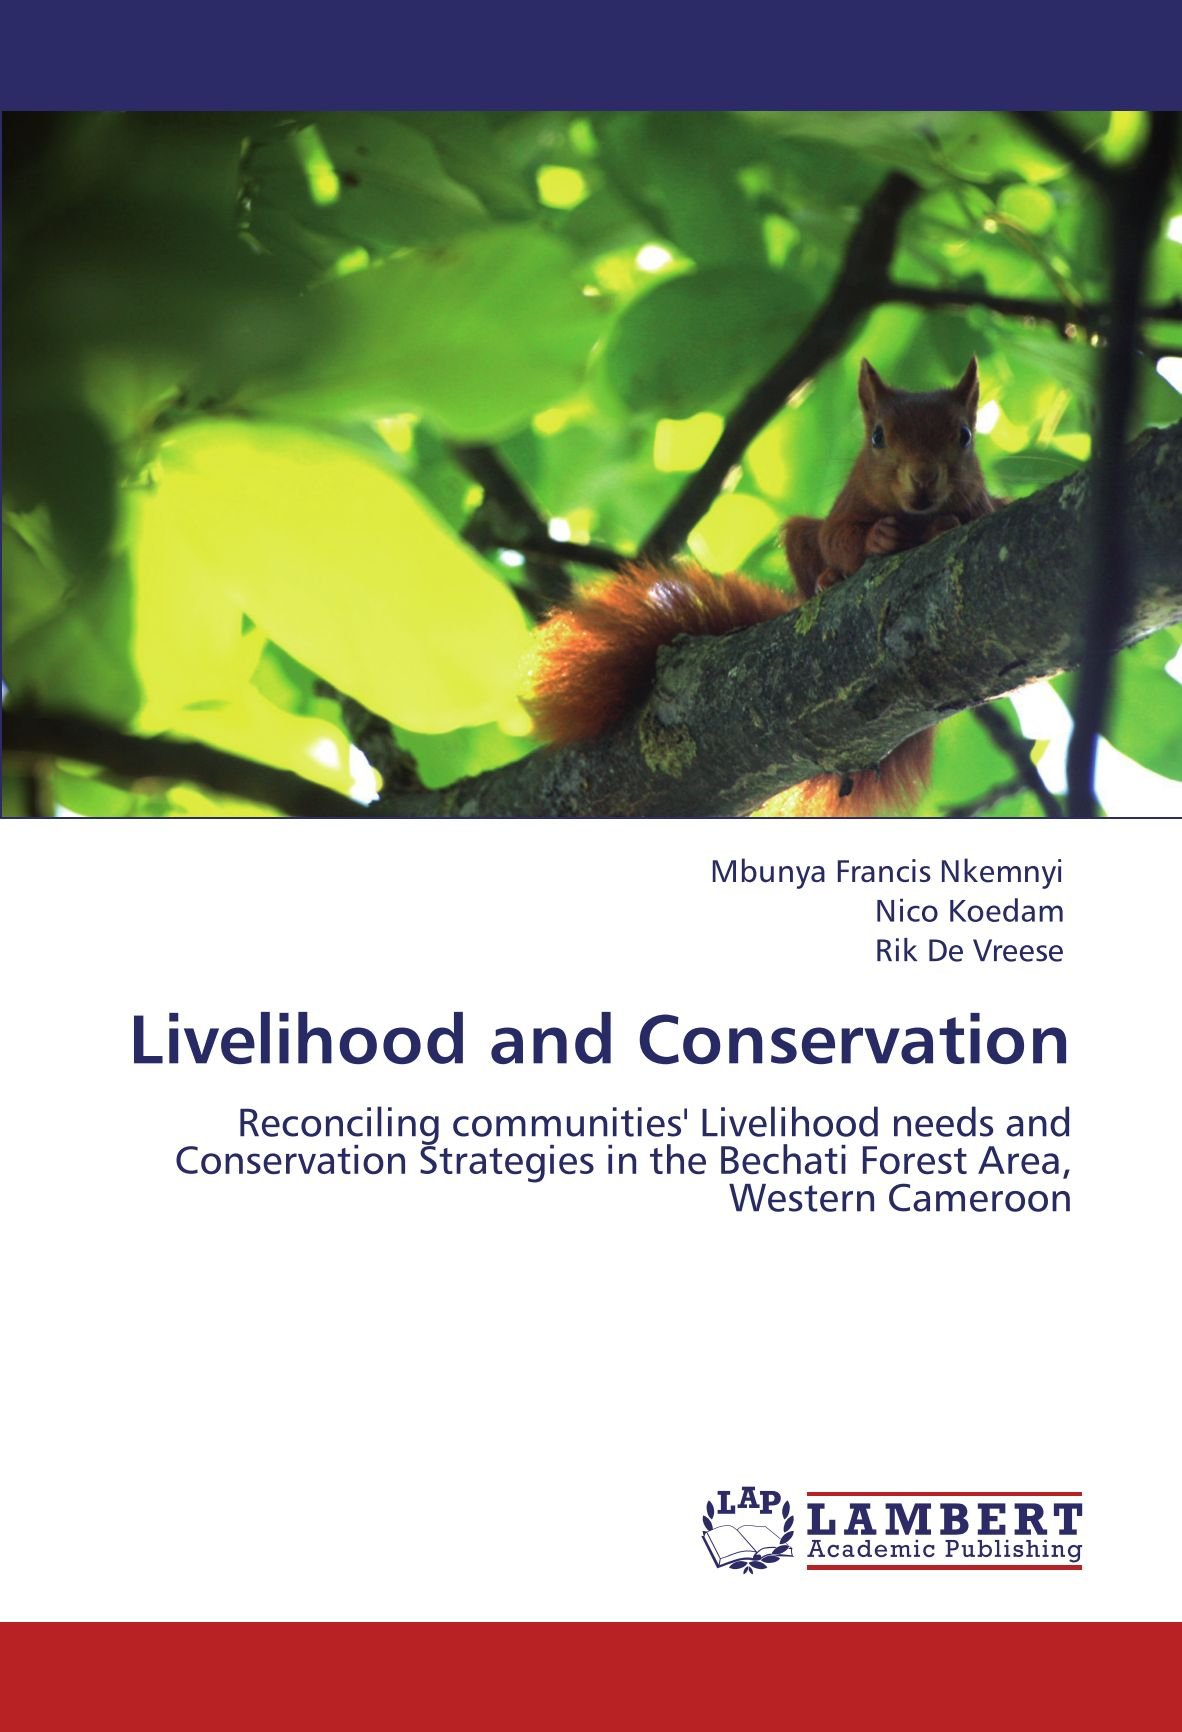 Download Livelihood and Conservation: Reconciling communities' Livelihood needs and Conservation Strategies in the Bechati Forest Area, Western Cameroon ebook